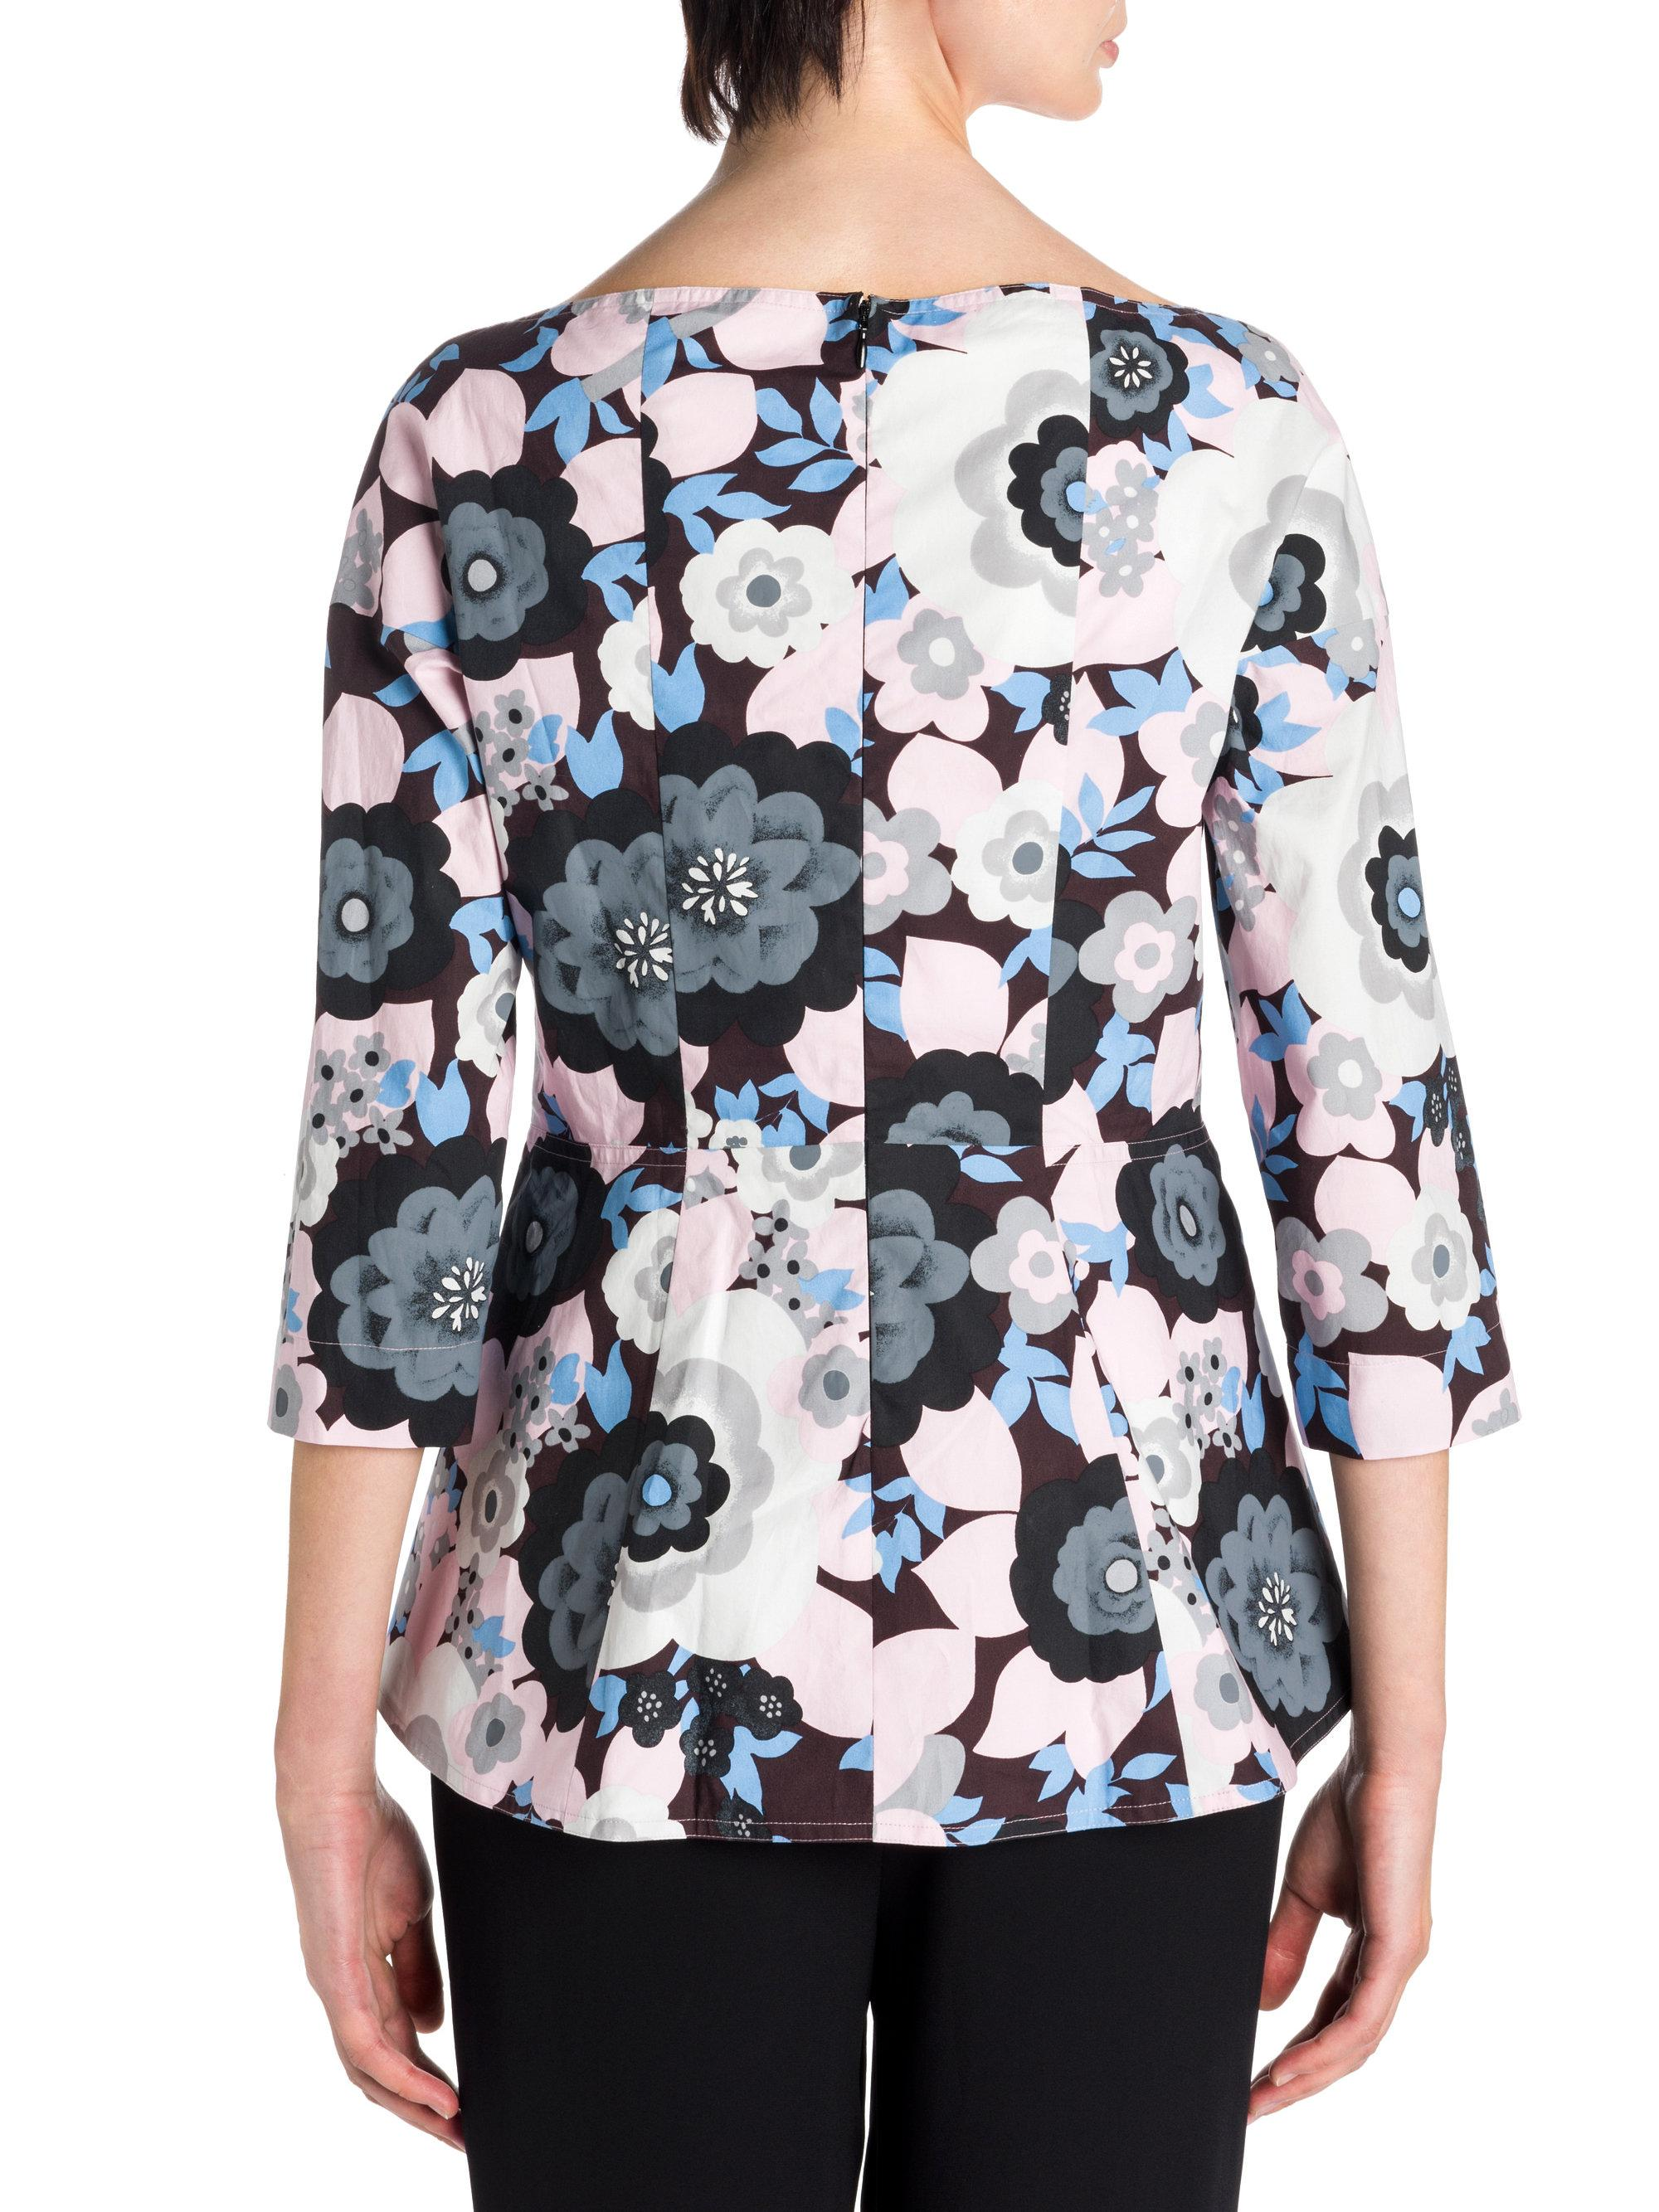 Cheapest Buy Cheap 2018 New floral print peplum top - Multicolour Marni Cheap Sale From China EKagCfSO